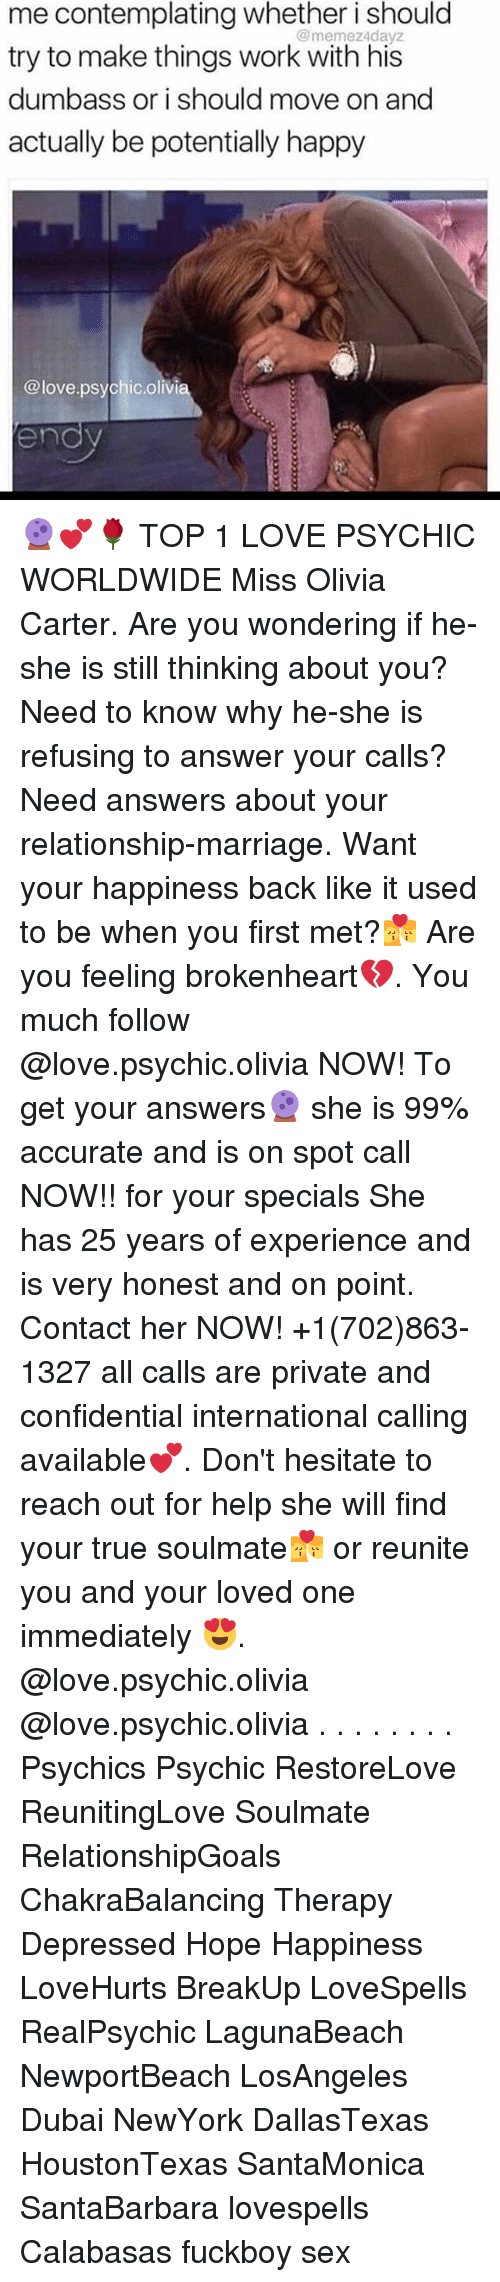 brokenheart: me contemplating whether i should  try to make things work with his  dumbass or i should move on and  actually be potentially happy  @memez4dayz  @love.psychic.olivia  endv 🔮💕🌹 TOP 1 LOVE PSYCHIC WORLDWIDE Miss Olivia Carter. Are you wondering if he-she is still thinking about you? Need to know why he-she is refusing to answer your calls? Need answers about your relationship-marriage. Want your happiness back like it used to be when you first met?💏 Are you feeling brokenheart💔. You much follow @love.psychic.olivia NOW! To get your answers🔮 she is 99% accurate and is on spot call NOW!! for your specials She has 25 years of experience and is very honest and on point. Contact her NOW! +1(702)863-1327 all calls are private and confidential international calling available💕. Don't hesitate to reach out for help she will find your true soulmate💏 or reunite you and your loved one immediately 😍. @love.psychic.olivia @love.psychic.olivia . . . . . . . . Psychics Psychic RestoreLove ReunitingLove Soulmate RelationshipGoals ChakraBalancing Therapy Depressed Hope Happiness LoveHurts BreakUp LoveSpells RealPsychic LagunaBeach NewportBeach LosAngeles Dubai NewYork DallasTexas HoustonTexas SantaMonica SantaBarbara lovespells Calabasas fuckboy sex